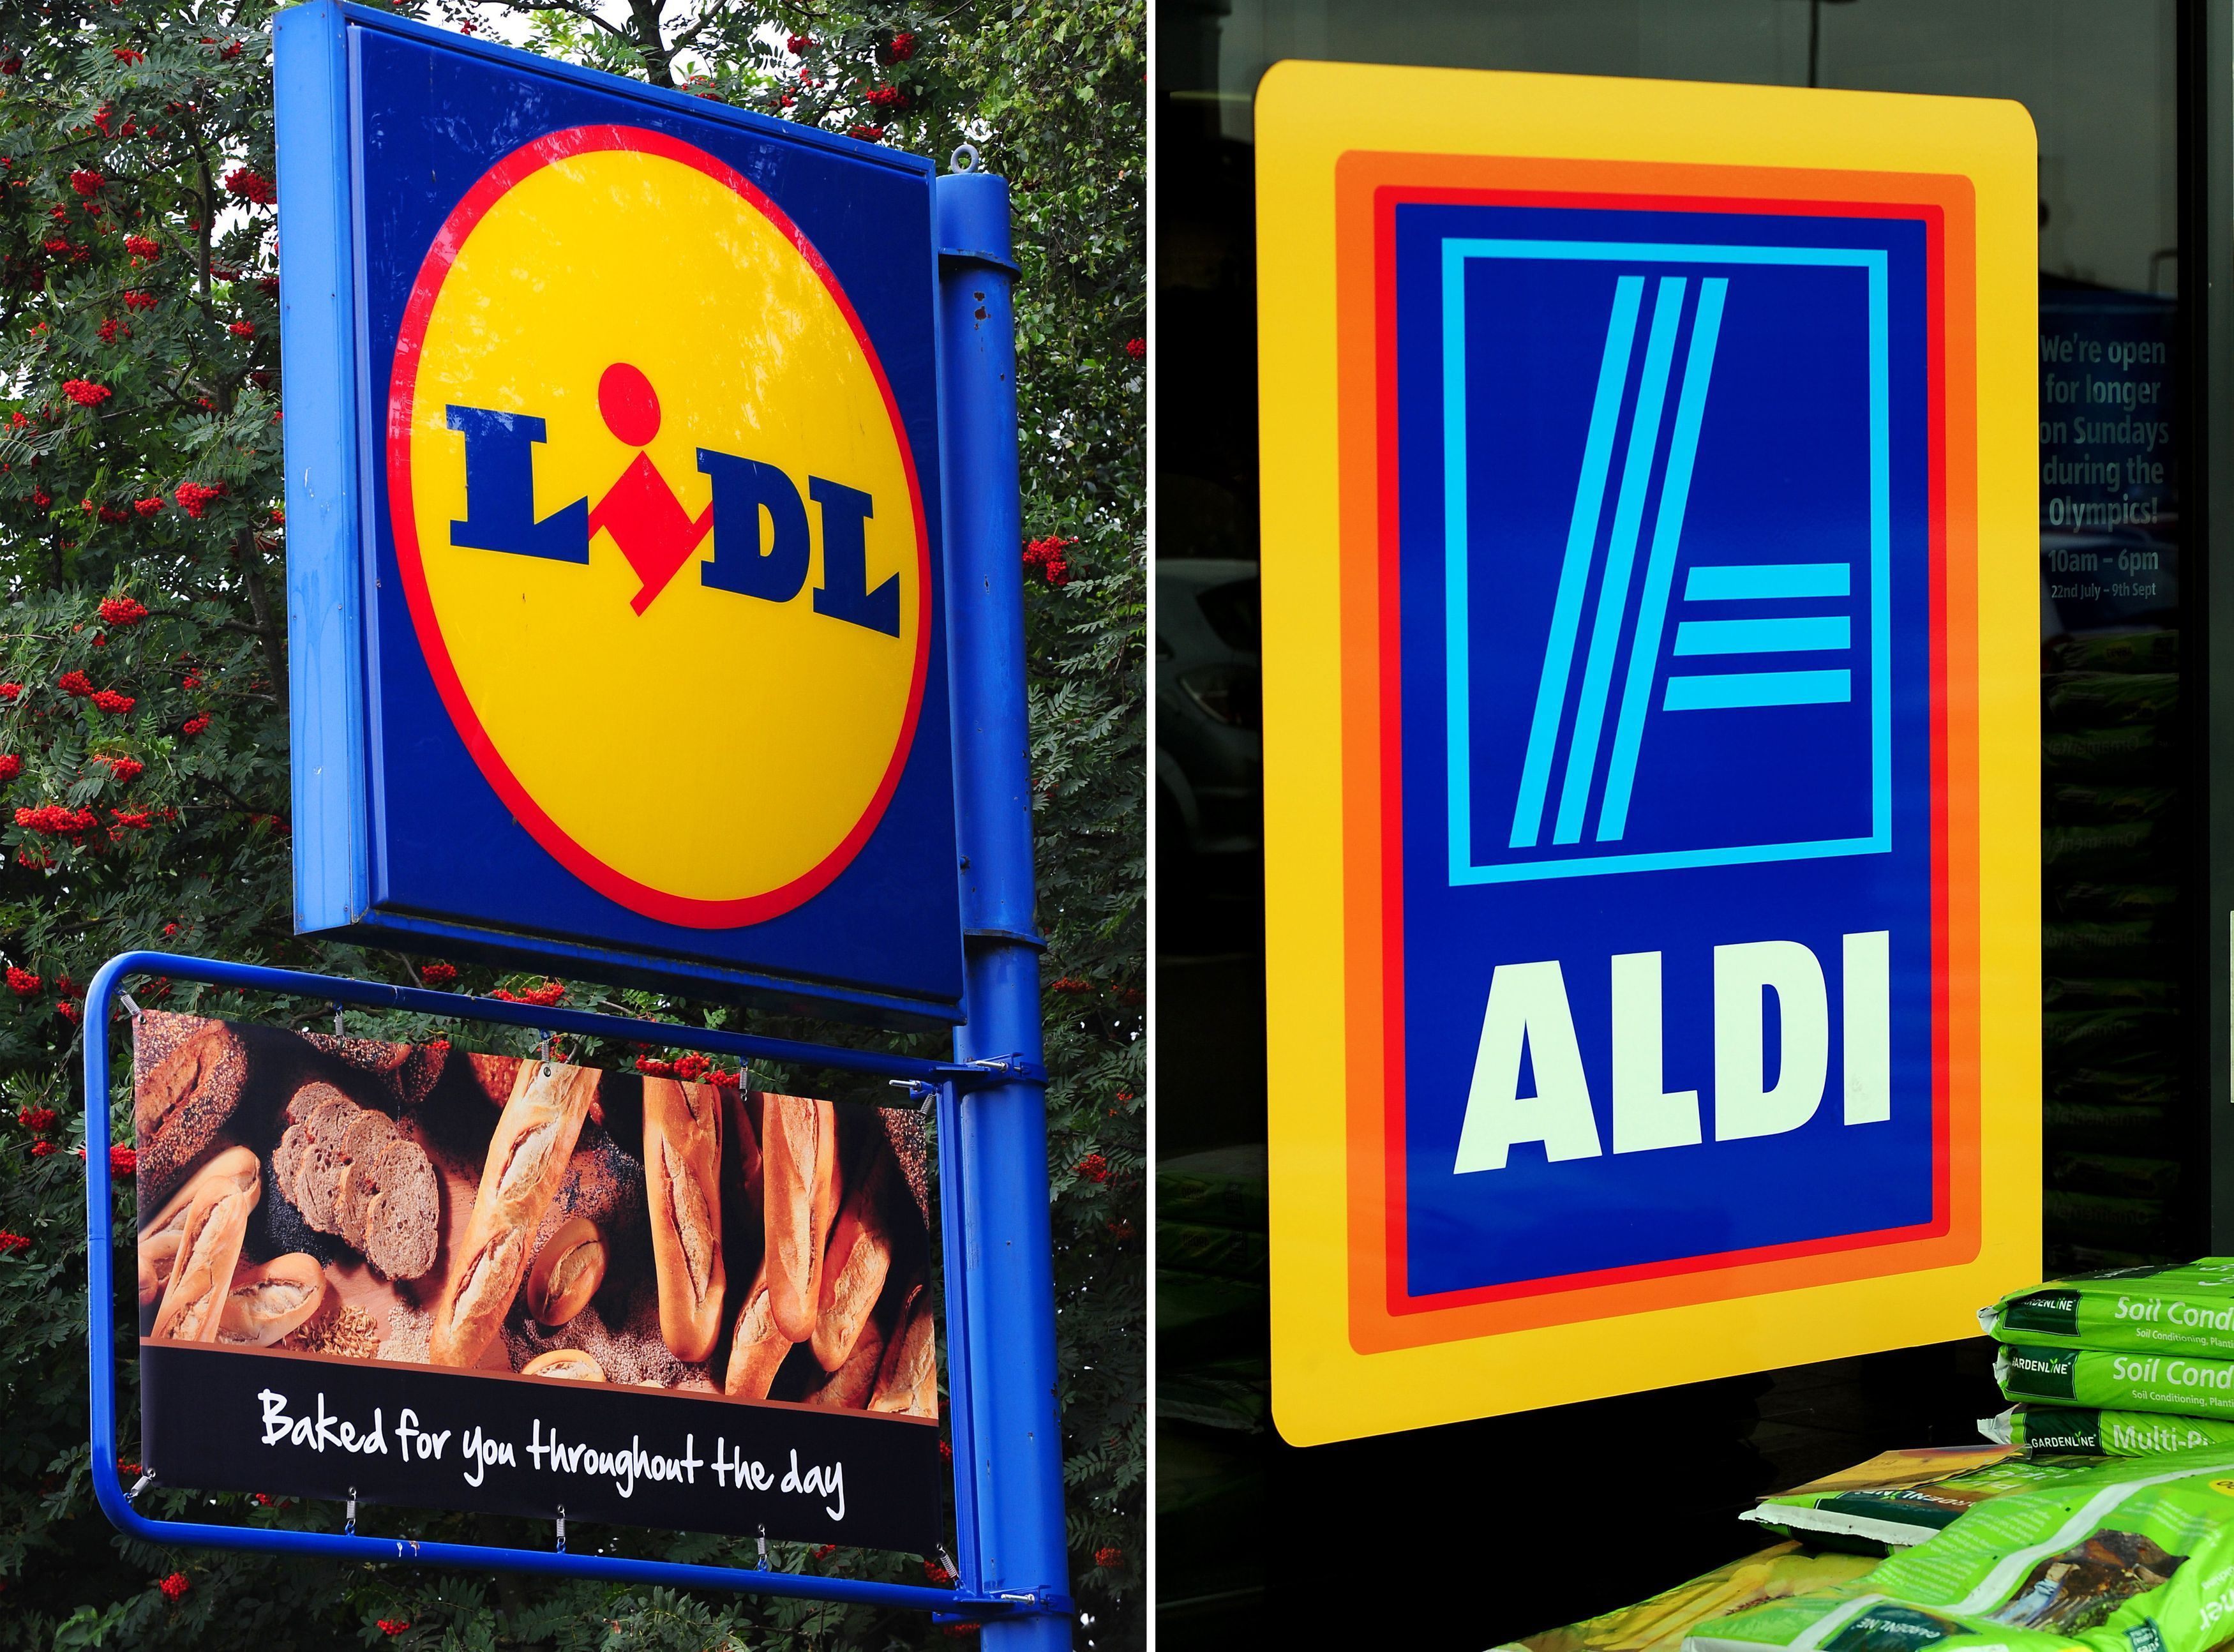 File photos of a Lidl sign (left) and an Aldi sign (right) as they have increased their market share over the Christmas period as ?1 in every ?14 in grocery spending went to the discount retailers. PRESS ASSOCIATION Photo. Issue date: Tuesday January 14, 2014. The two brands took a 7.1% share over the 12 weeks to January 5 compared to 5.8% the year before, with Aldi increasing total sales to more than ?1 billion. See PA story CITY Supermarket. Photo credit should read: Rui Vieira/PA Wire